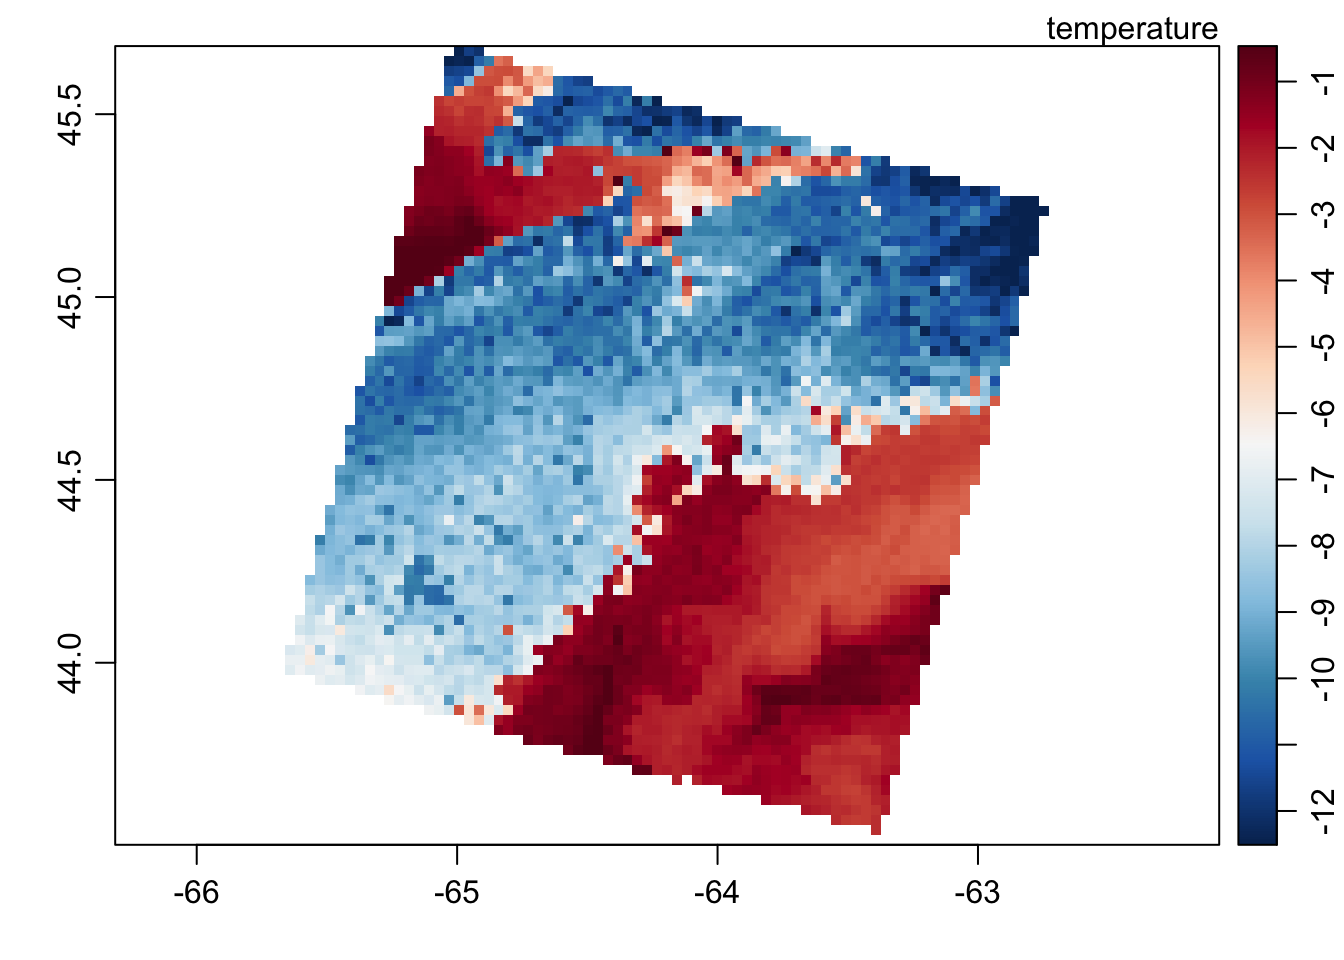 Image plot of the landsat data showing the temperature band.